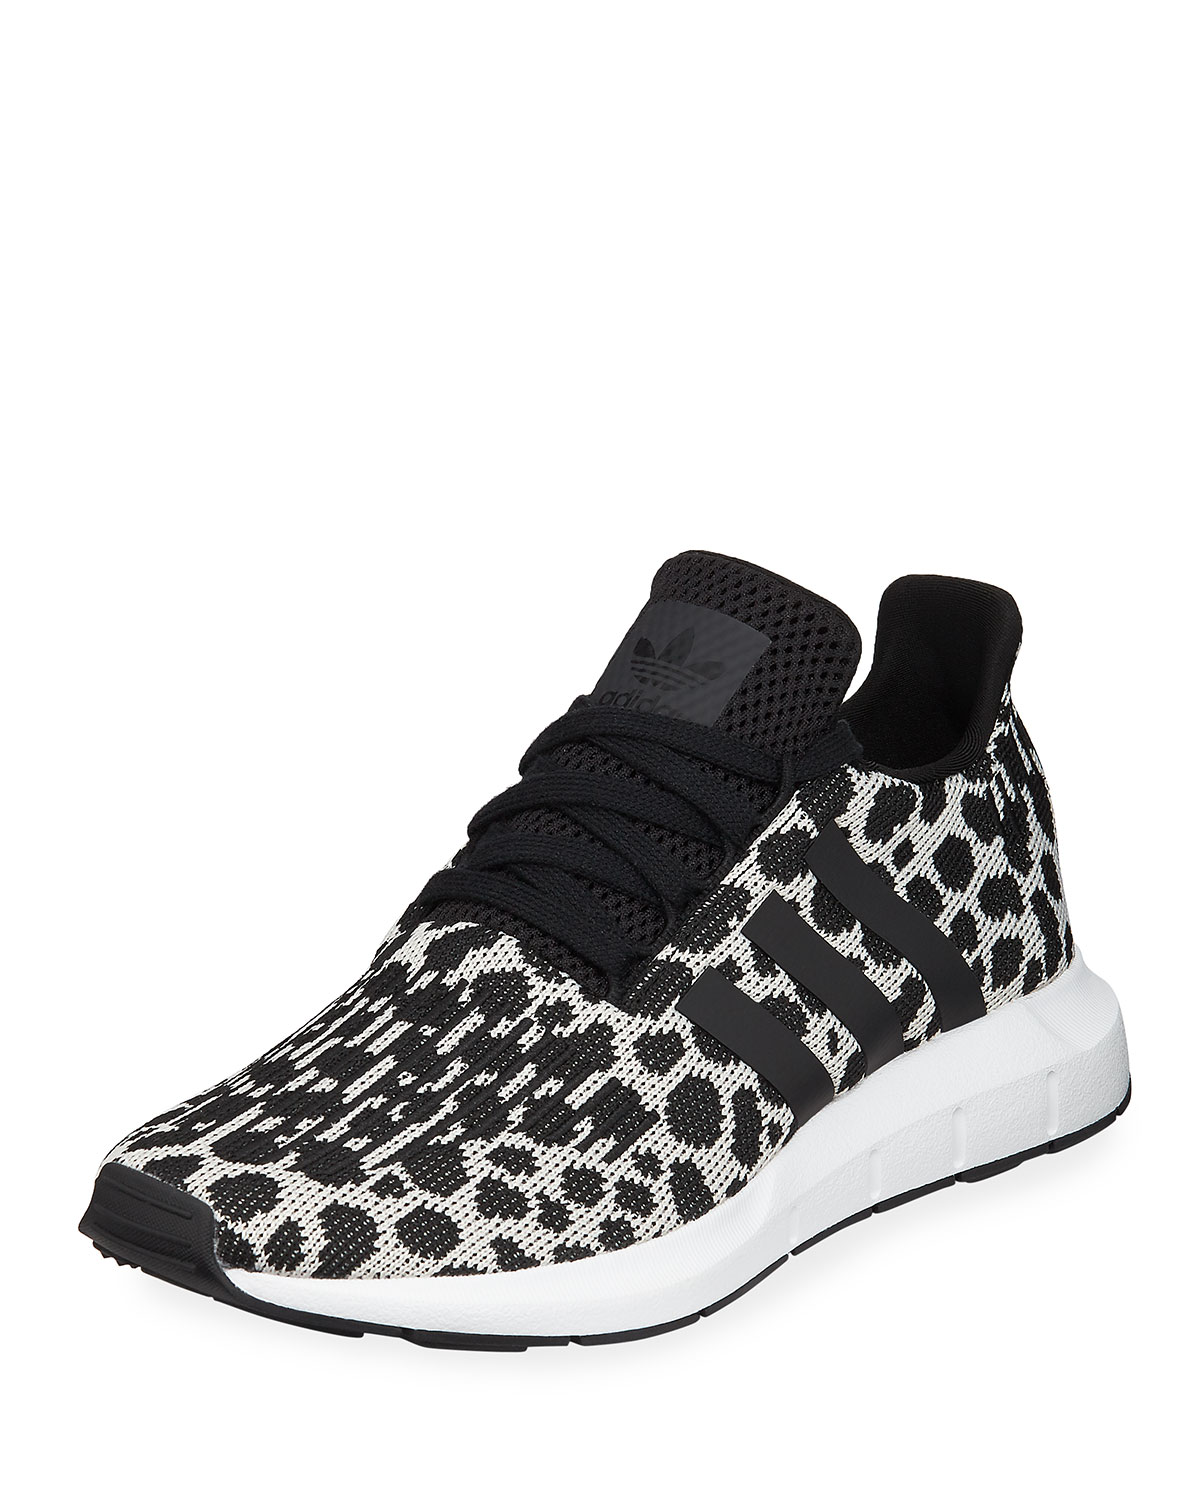 c4667aea18f7 Adidas Swift Run Cheetah-Print Trainer Sneakers